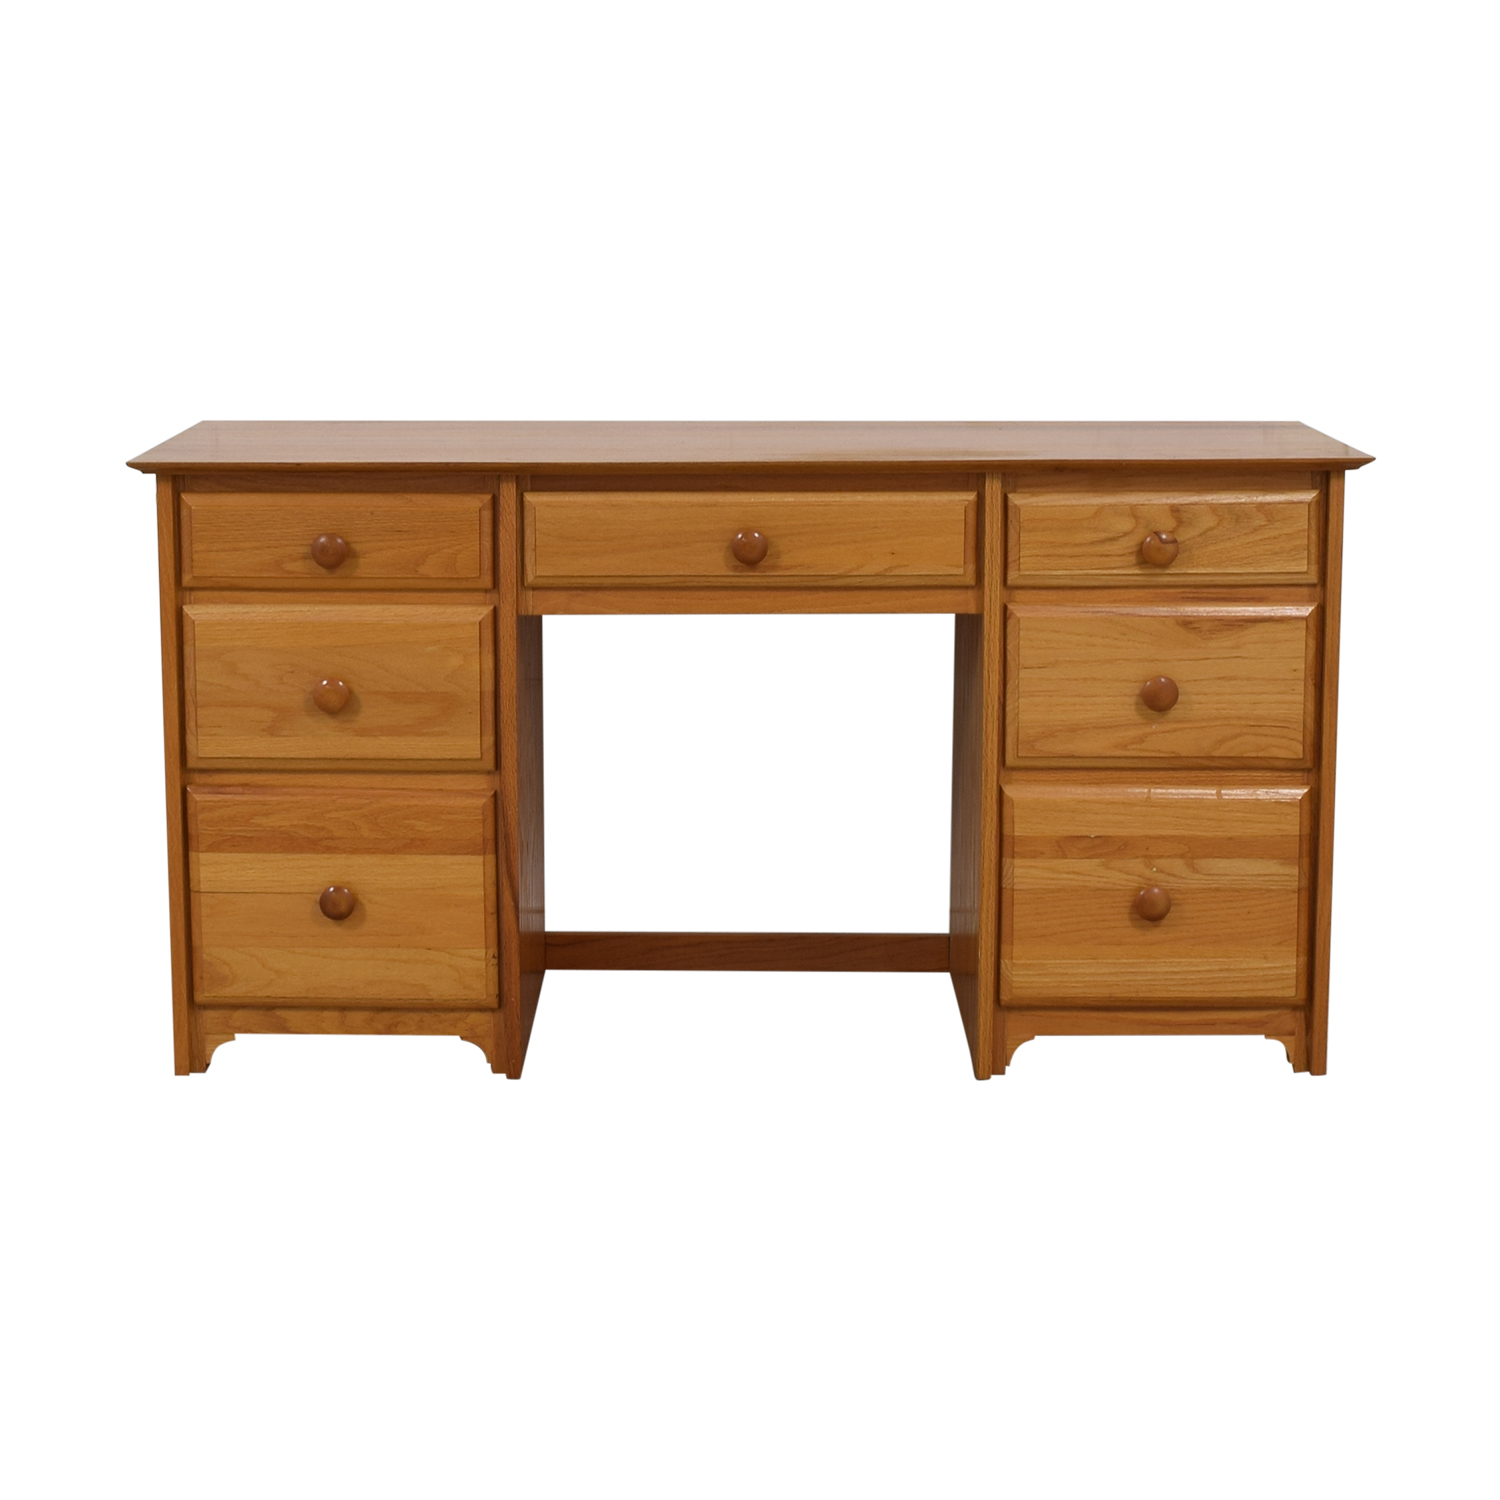 Seven-Drawer Wood Desk price